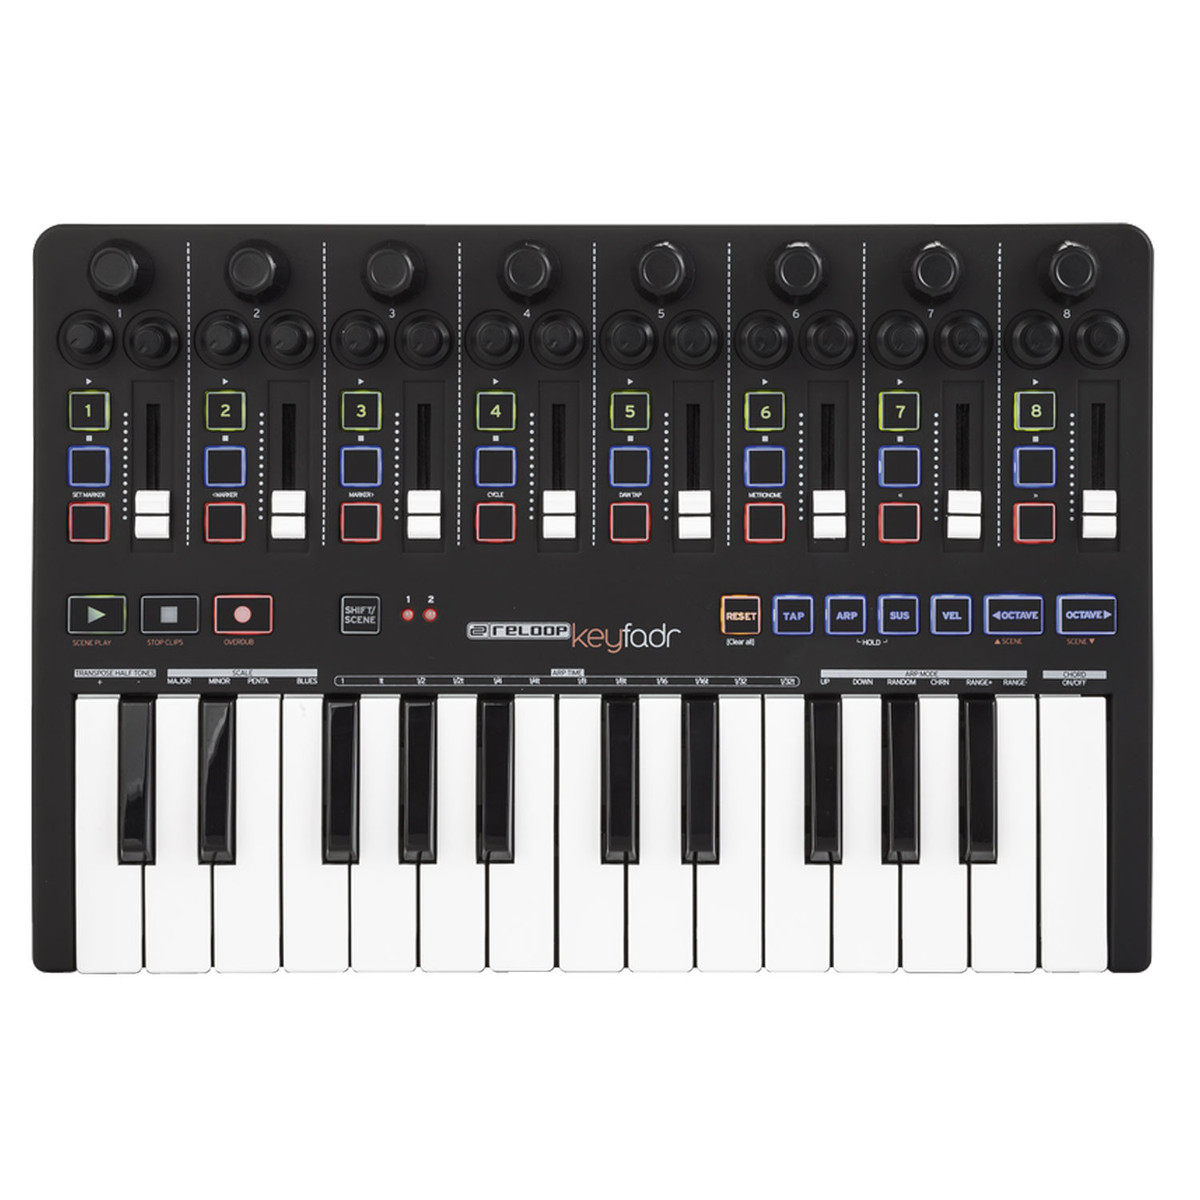 Reloop Keyfadr Midi Controller With Faders And Keyboard